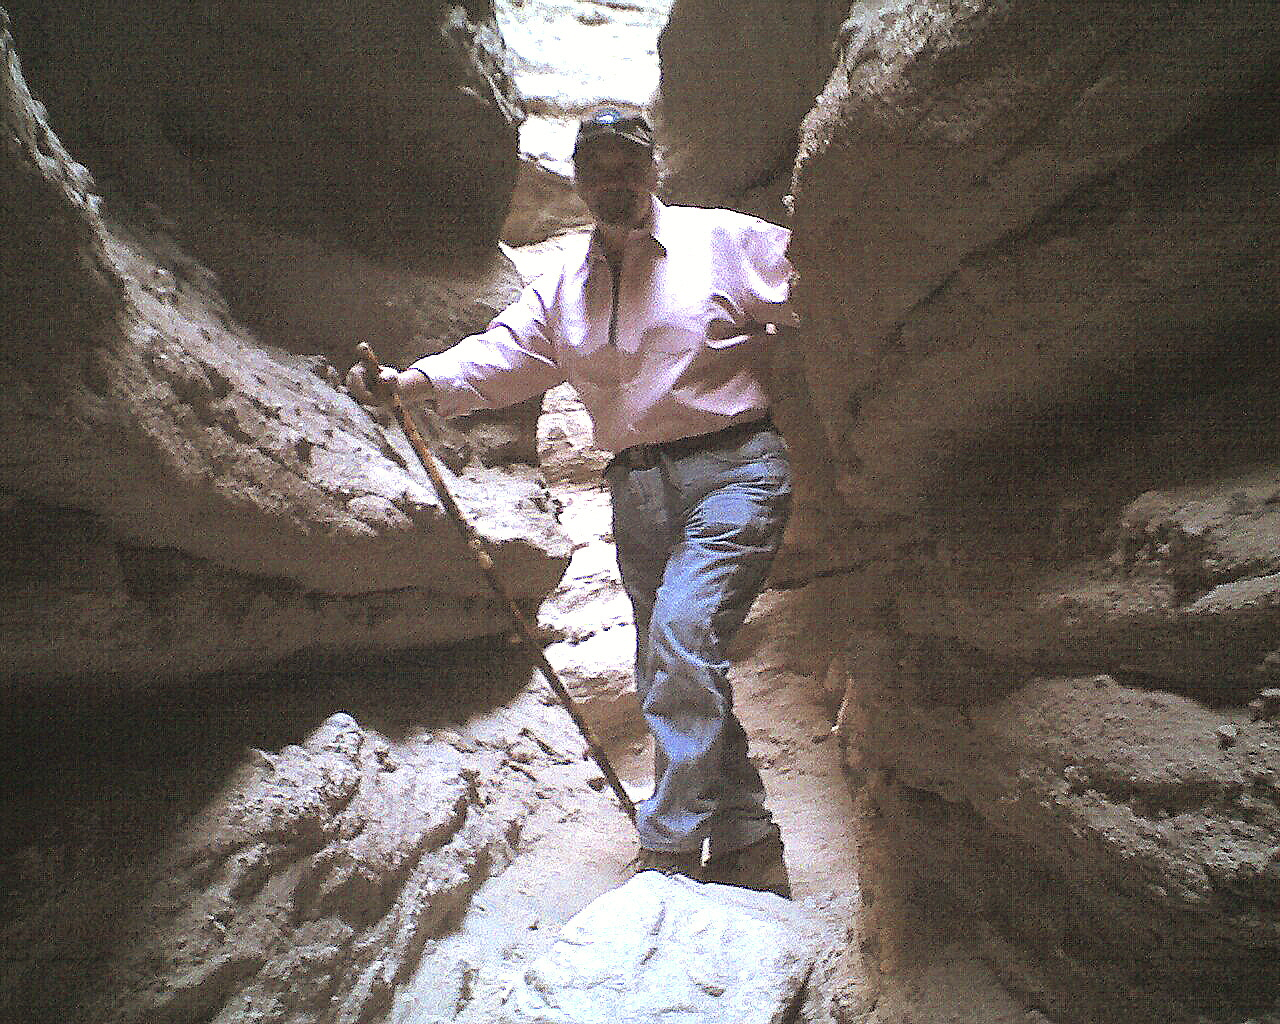 Emile, Ladders Trail, Slot and Painted Canyon, Mecca, CA